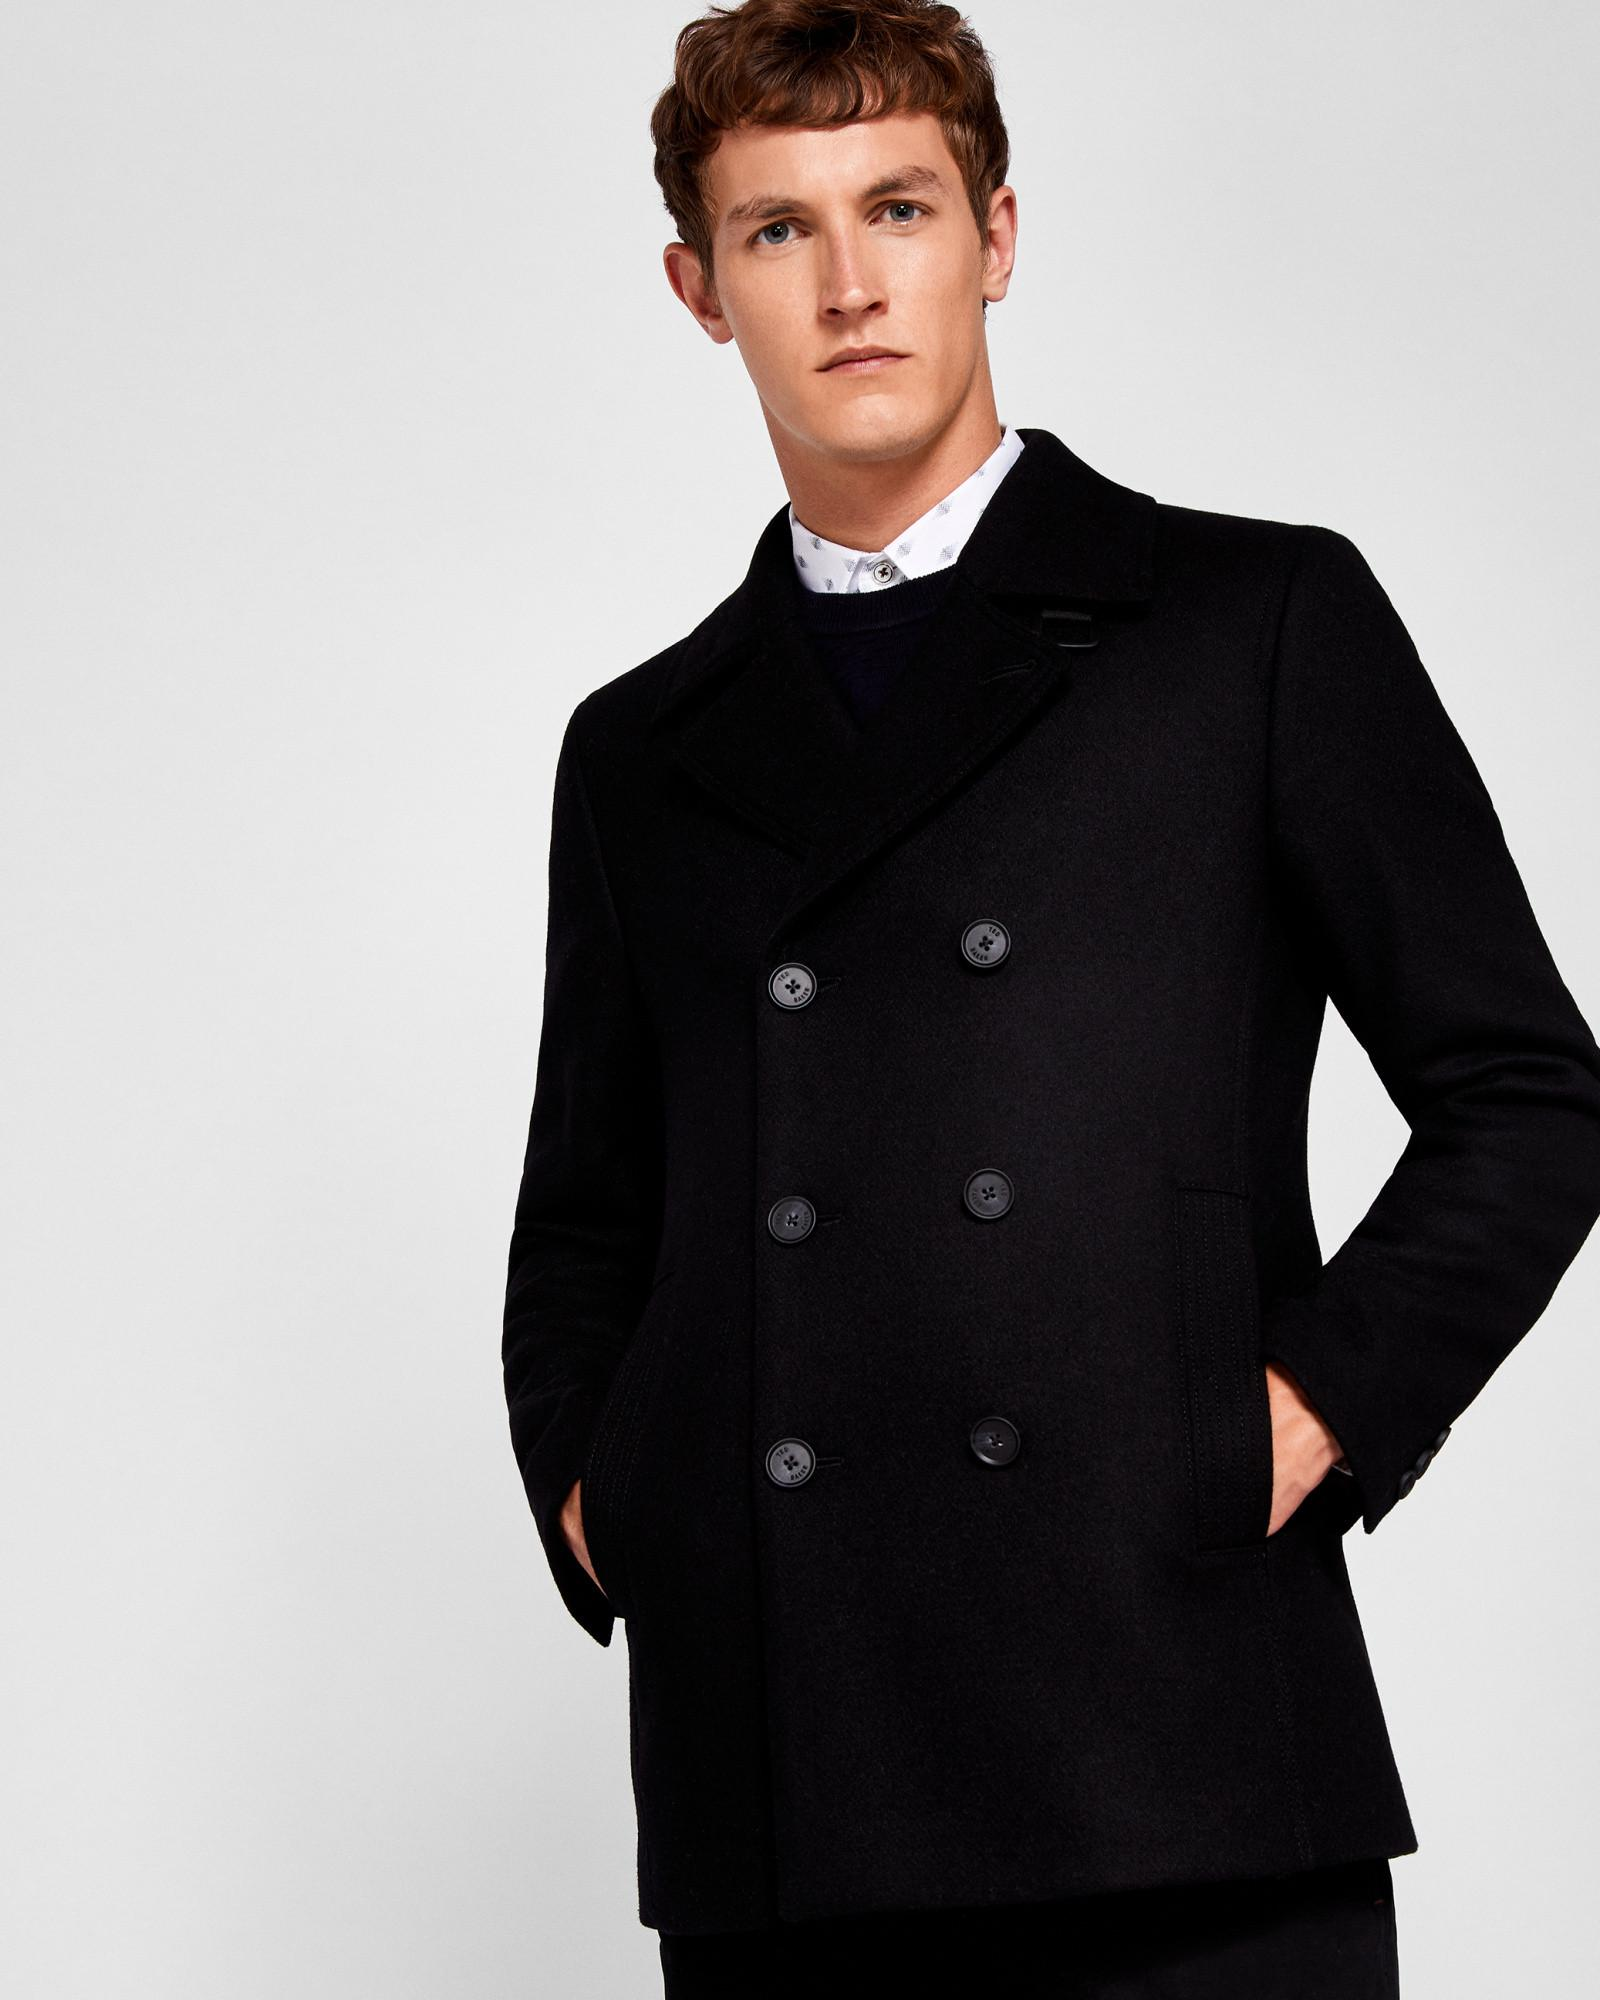 bd3aaf4a8ad2a Ted Baker Wool Peacoat in Black for Men - Lyst